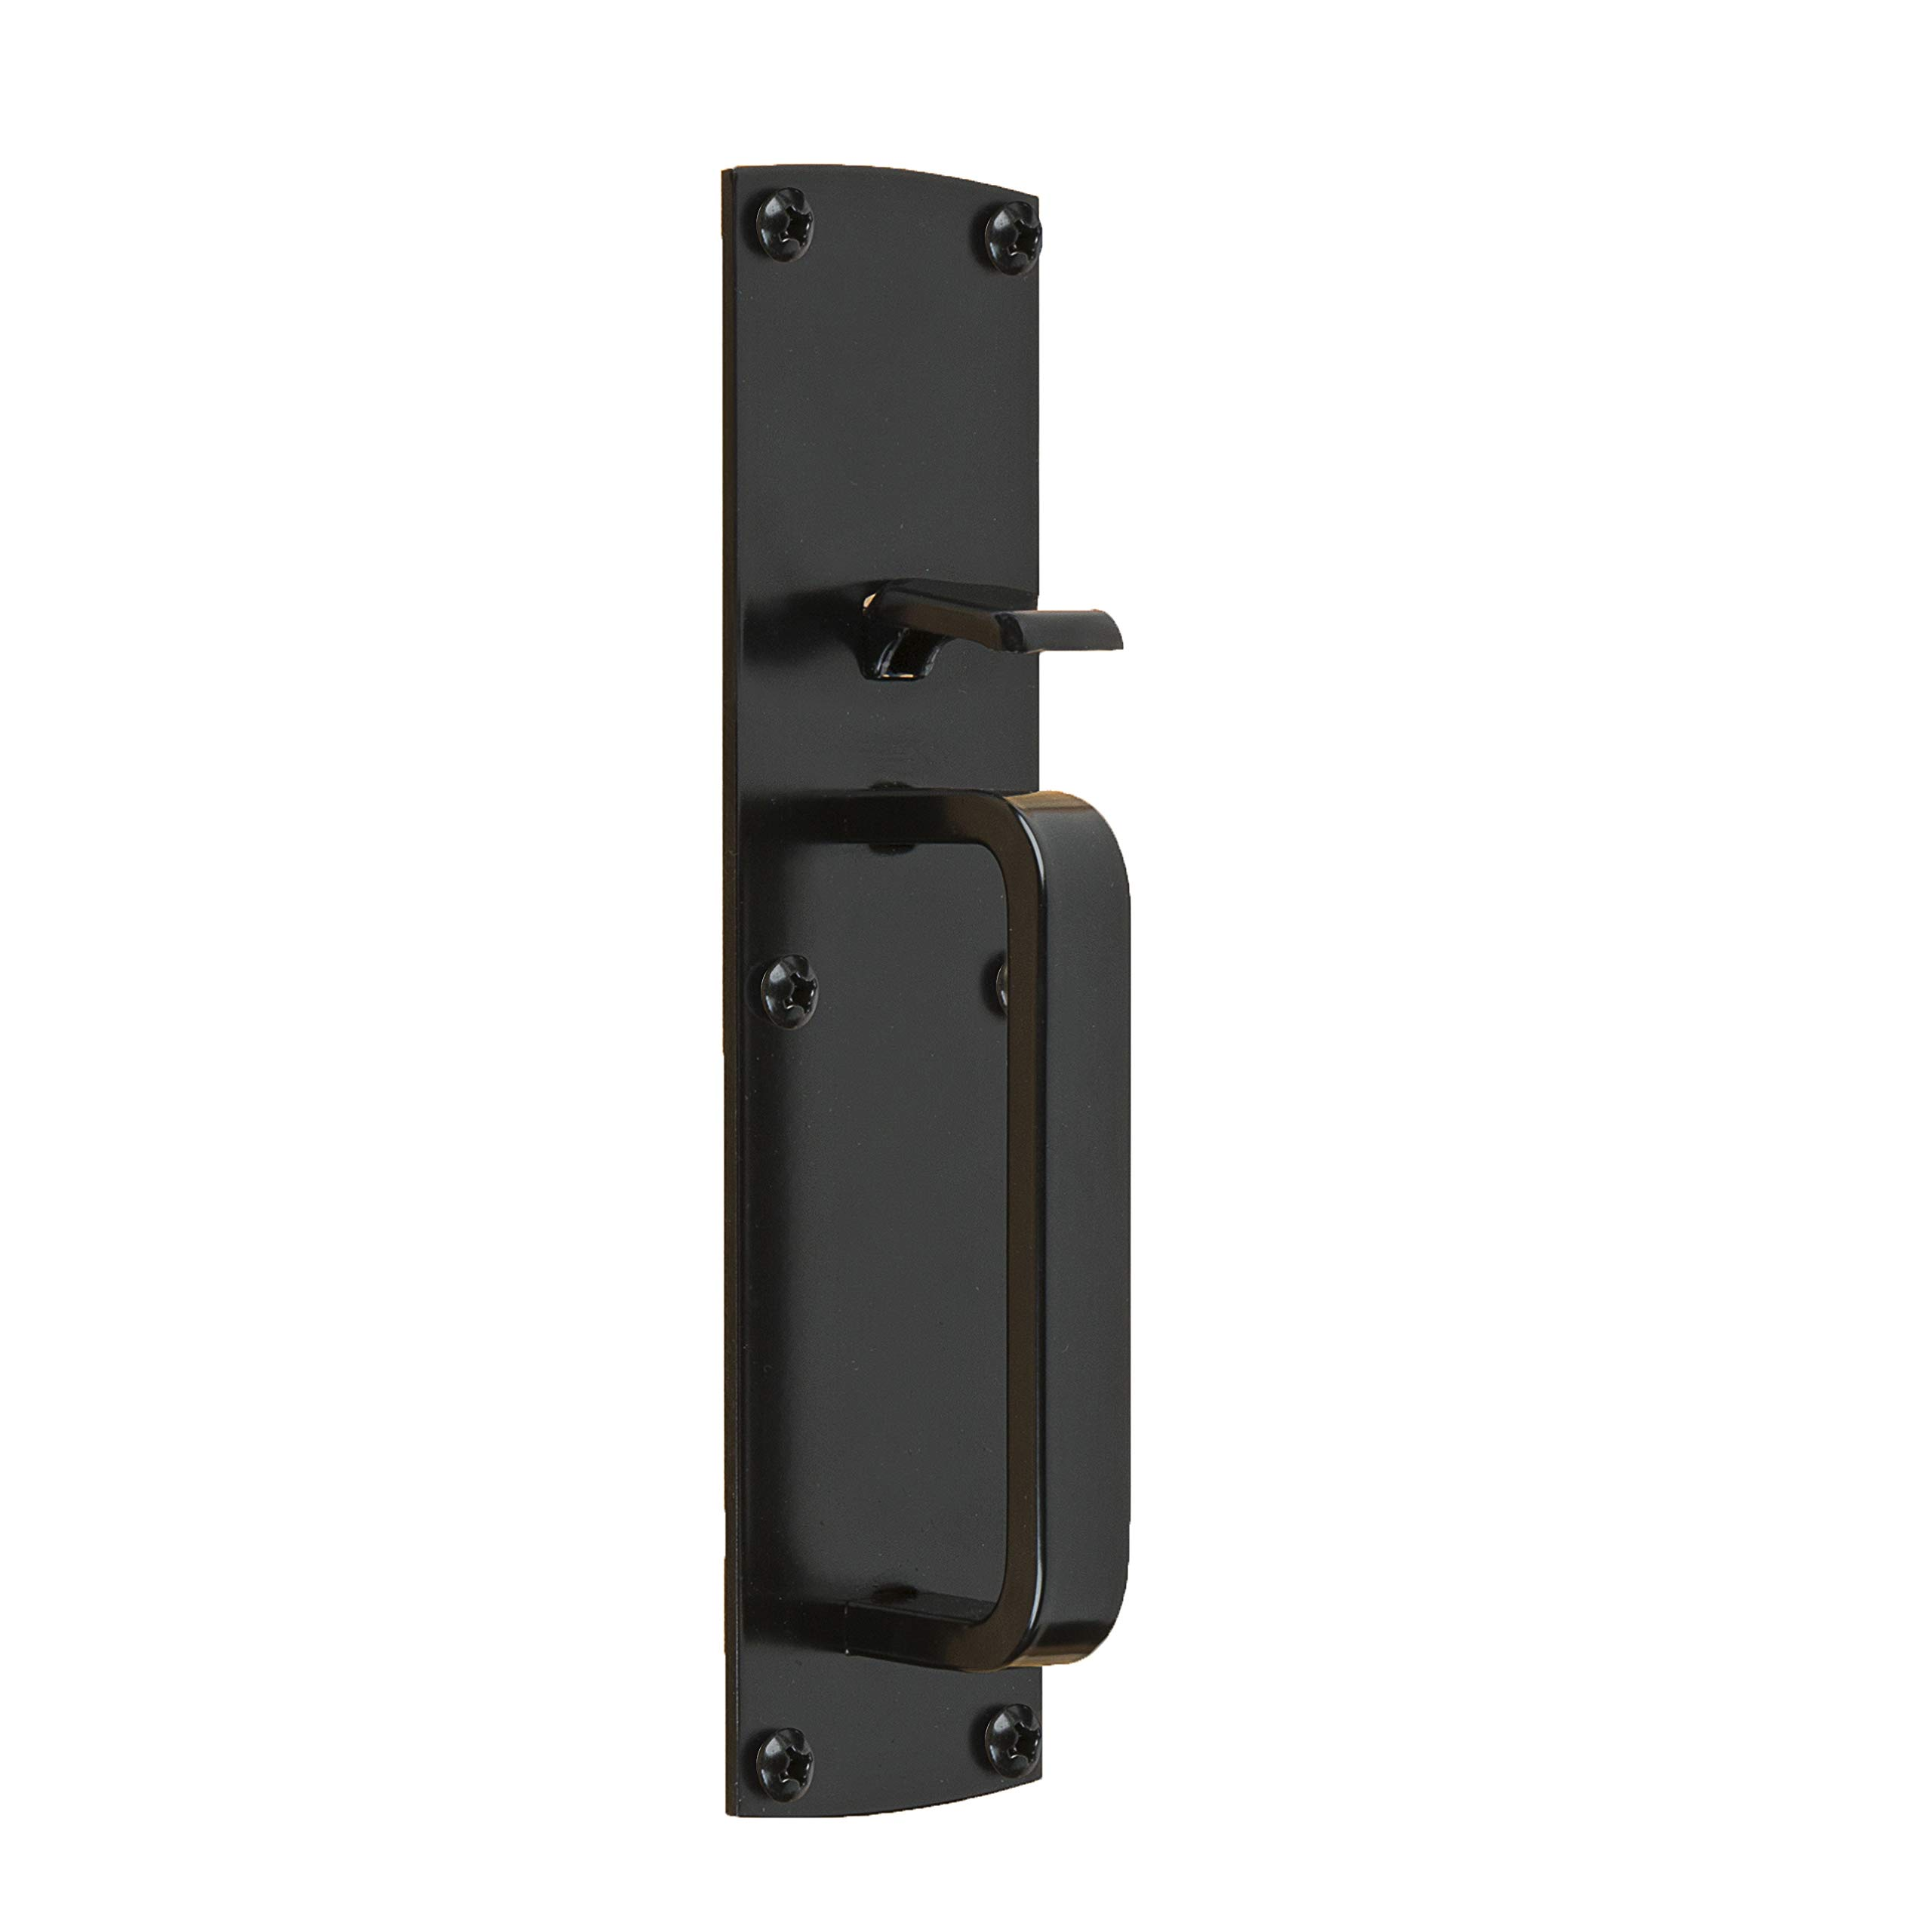 Gate Thumb Latch N109-050 by National Hardware in Black by National Hardware (Image #1)